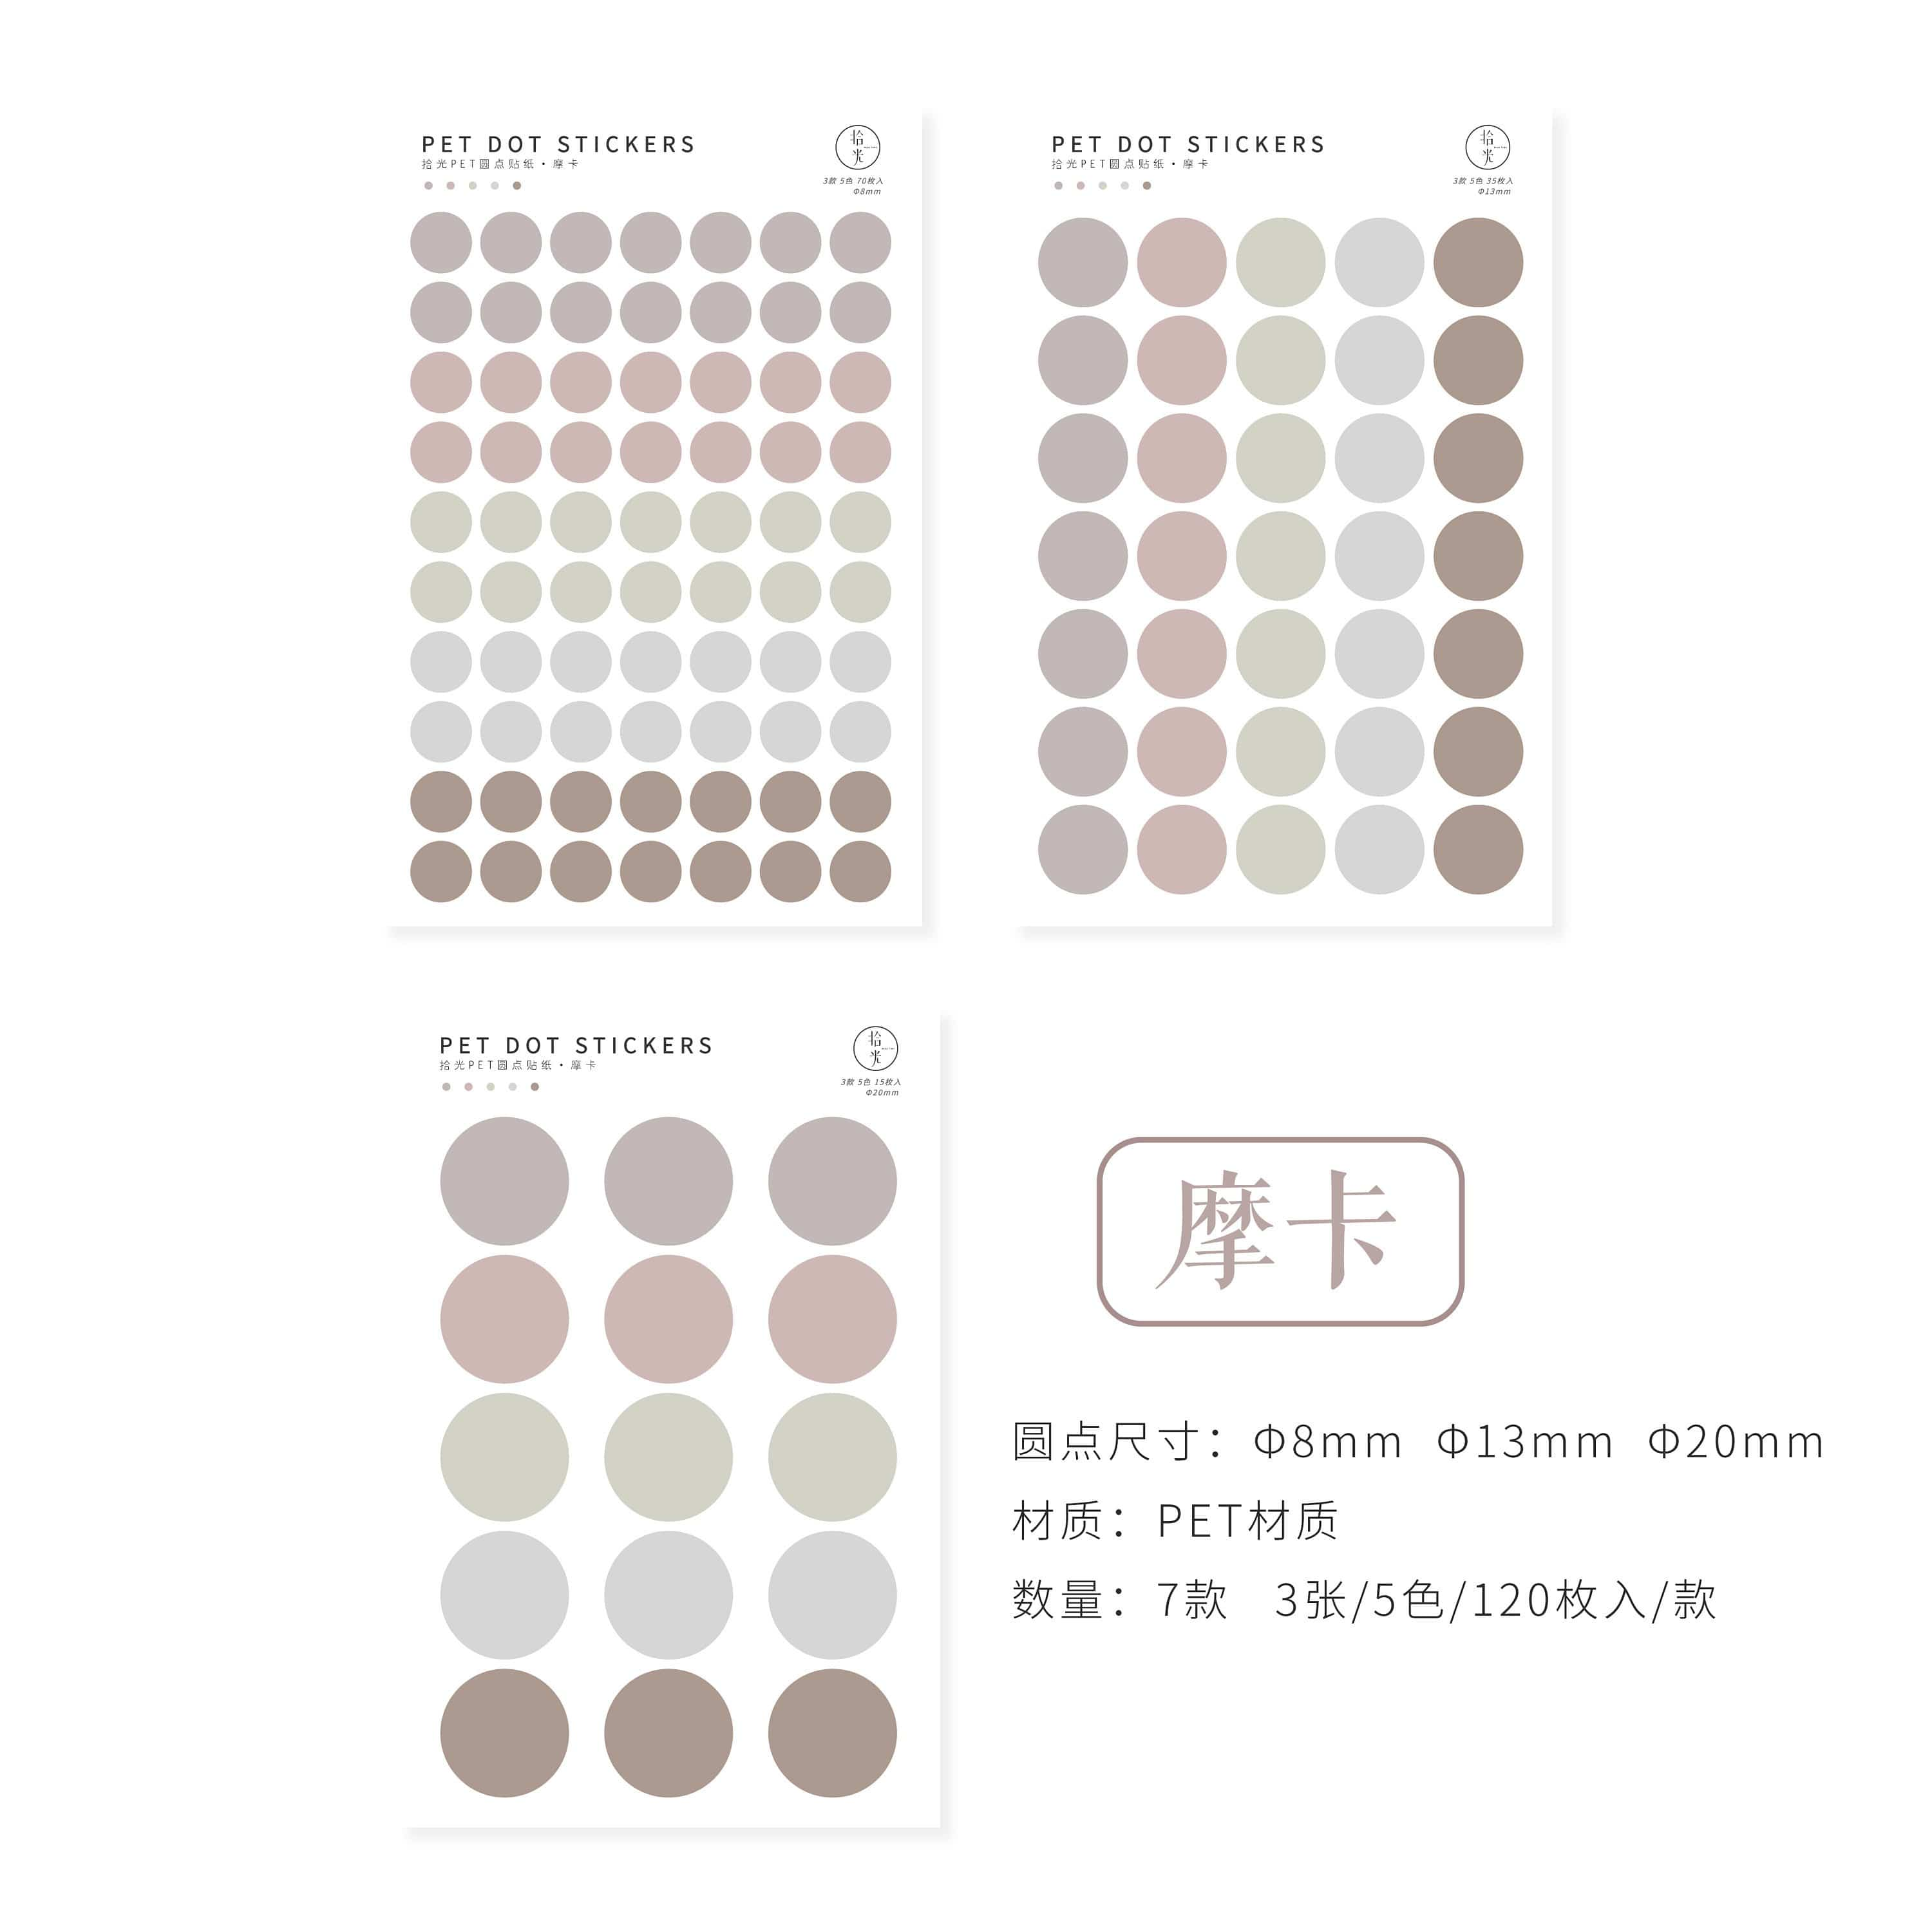 TRANSPARENT PET Pastel Dot Stickers Circle Stickers | Mocha - The Stationery Life!